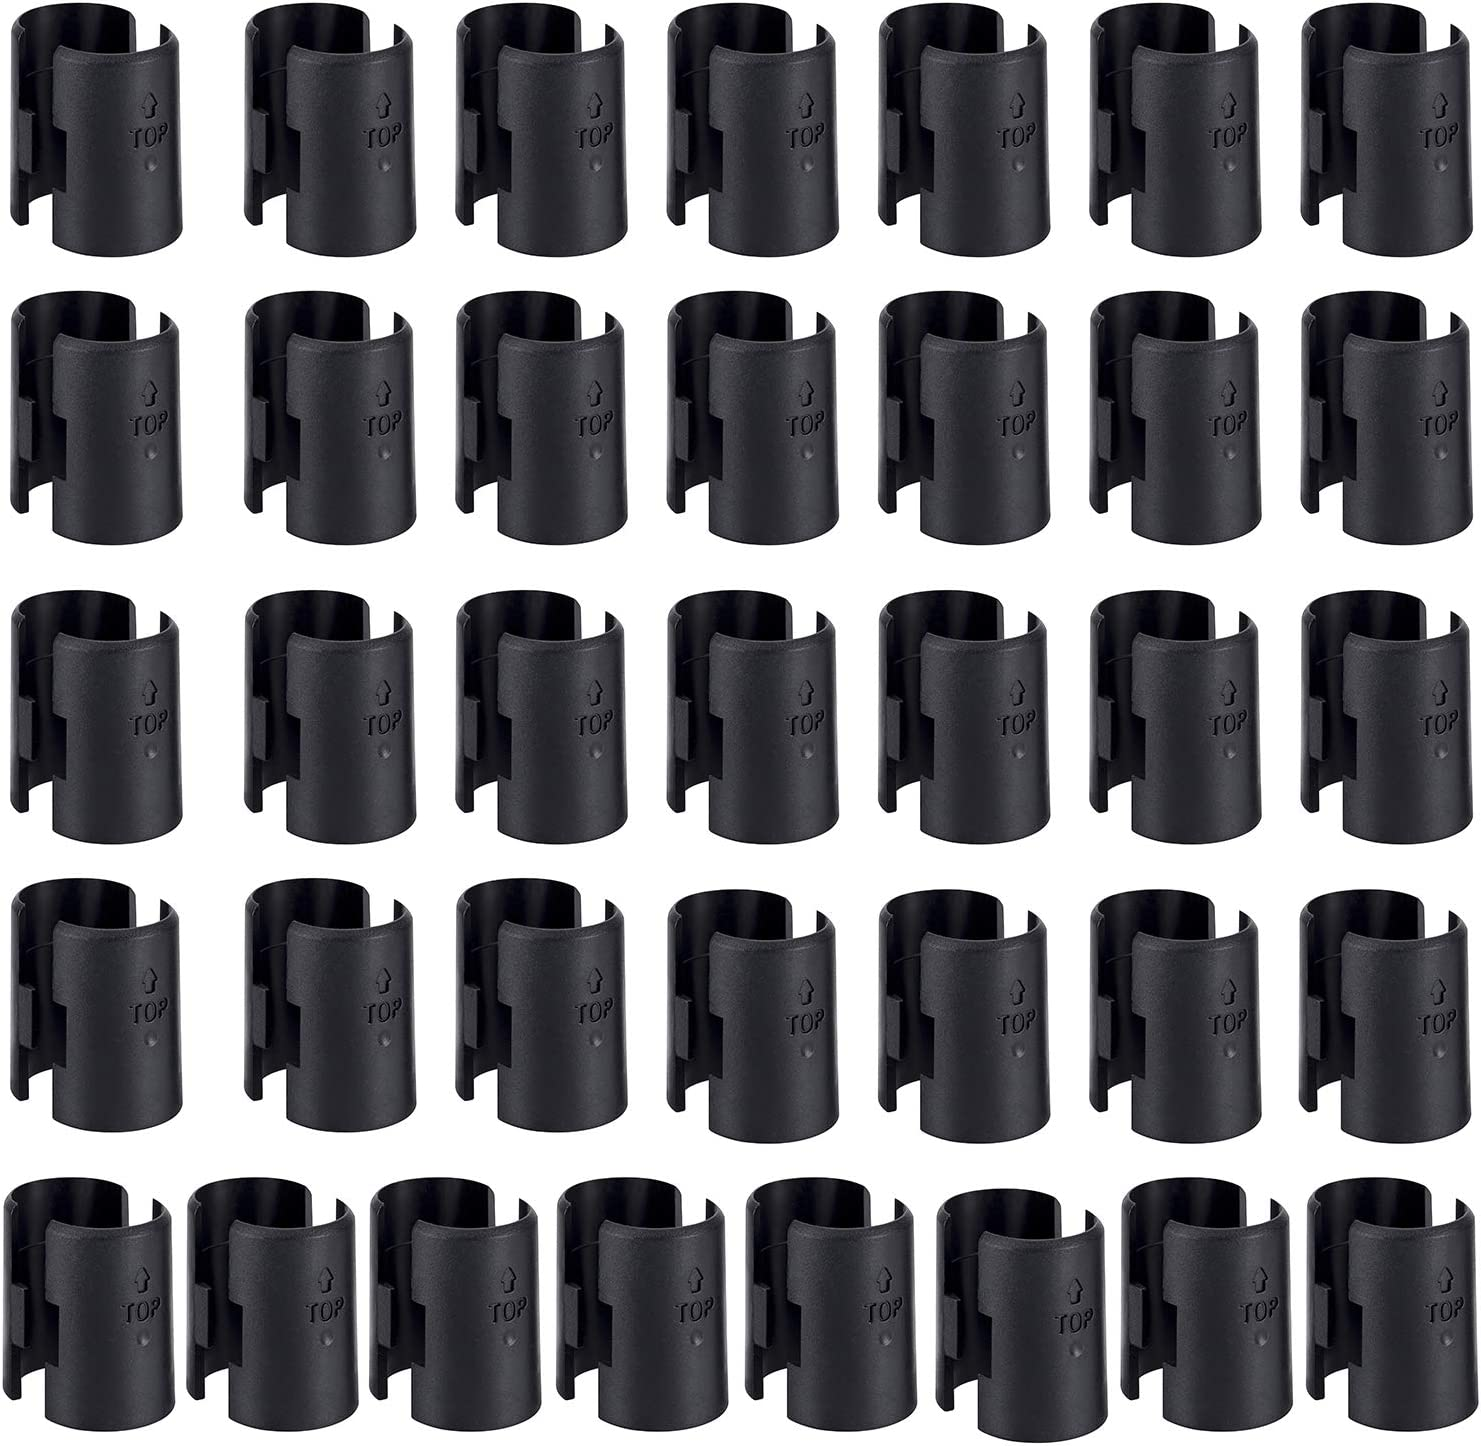 """WAFJAMF 72 Pack Wire Shelving Shelf Lock Clips for 1"""" Post- Shelving Sleeves Replacements for Wire Shelving System: Home Improvement"""